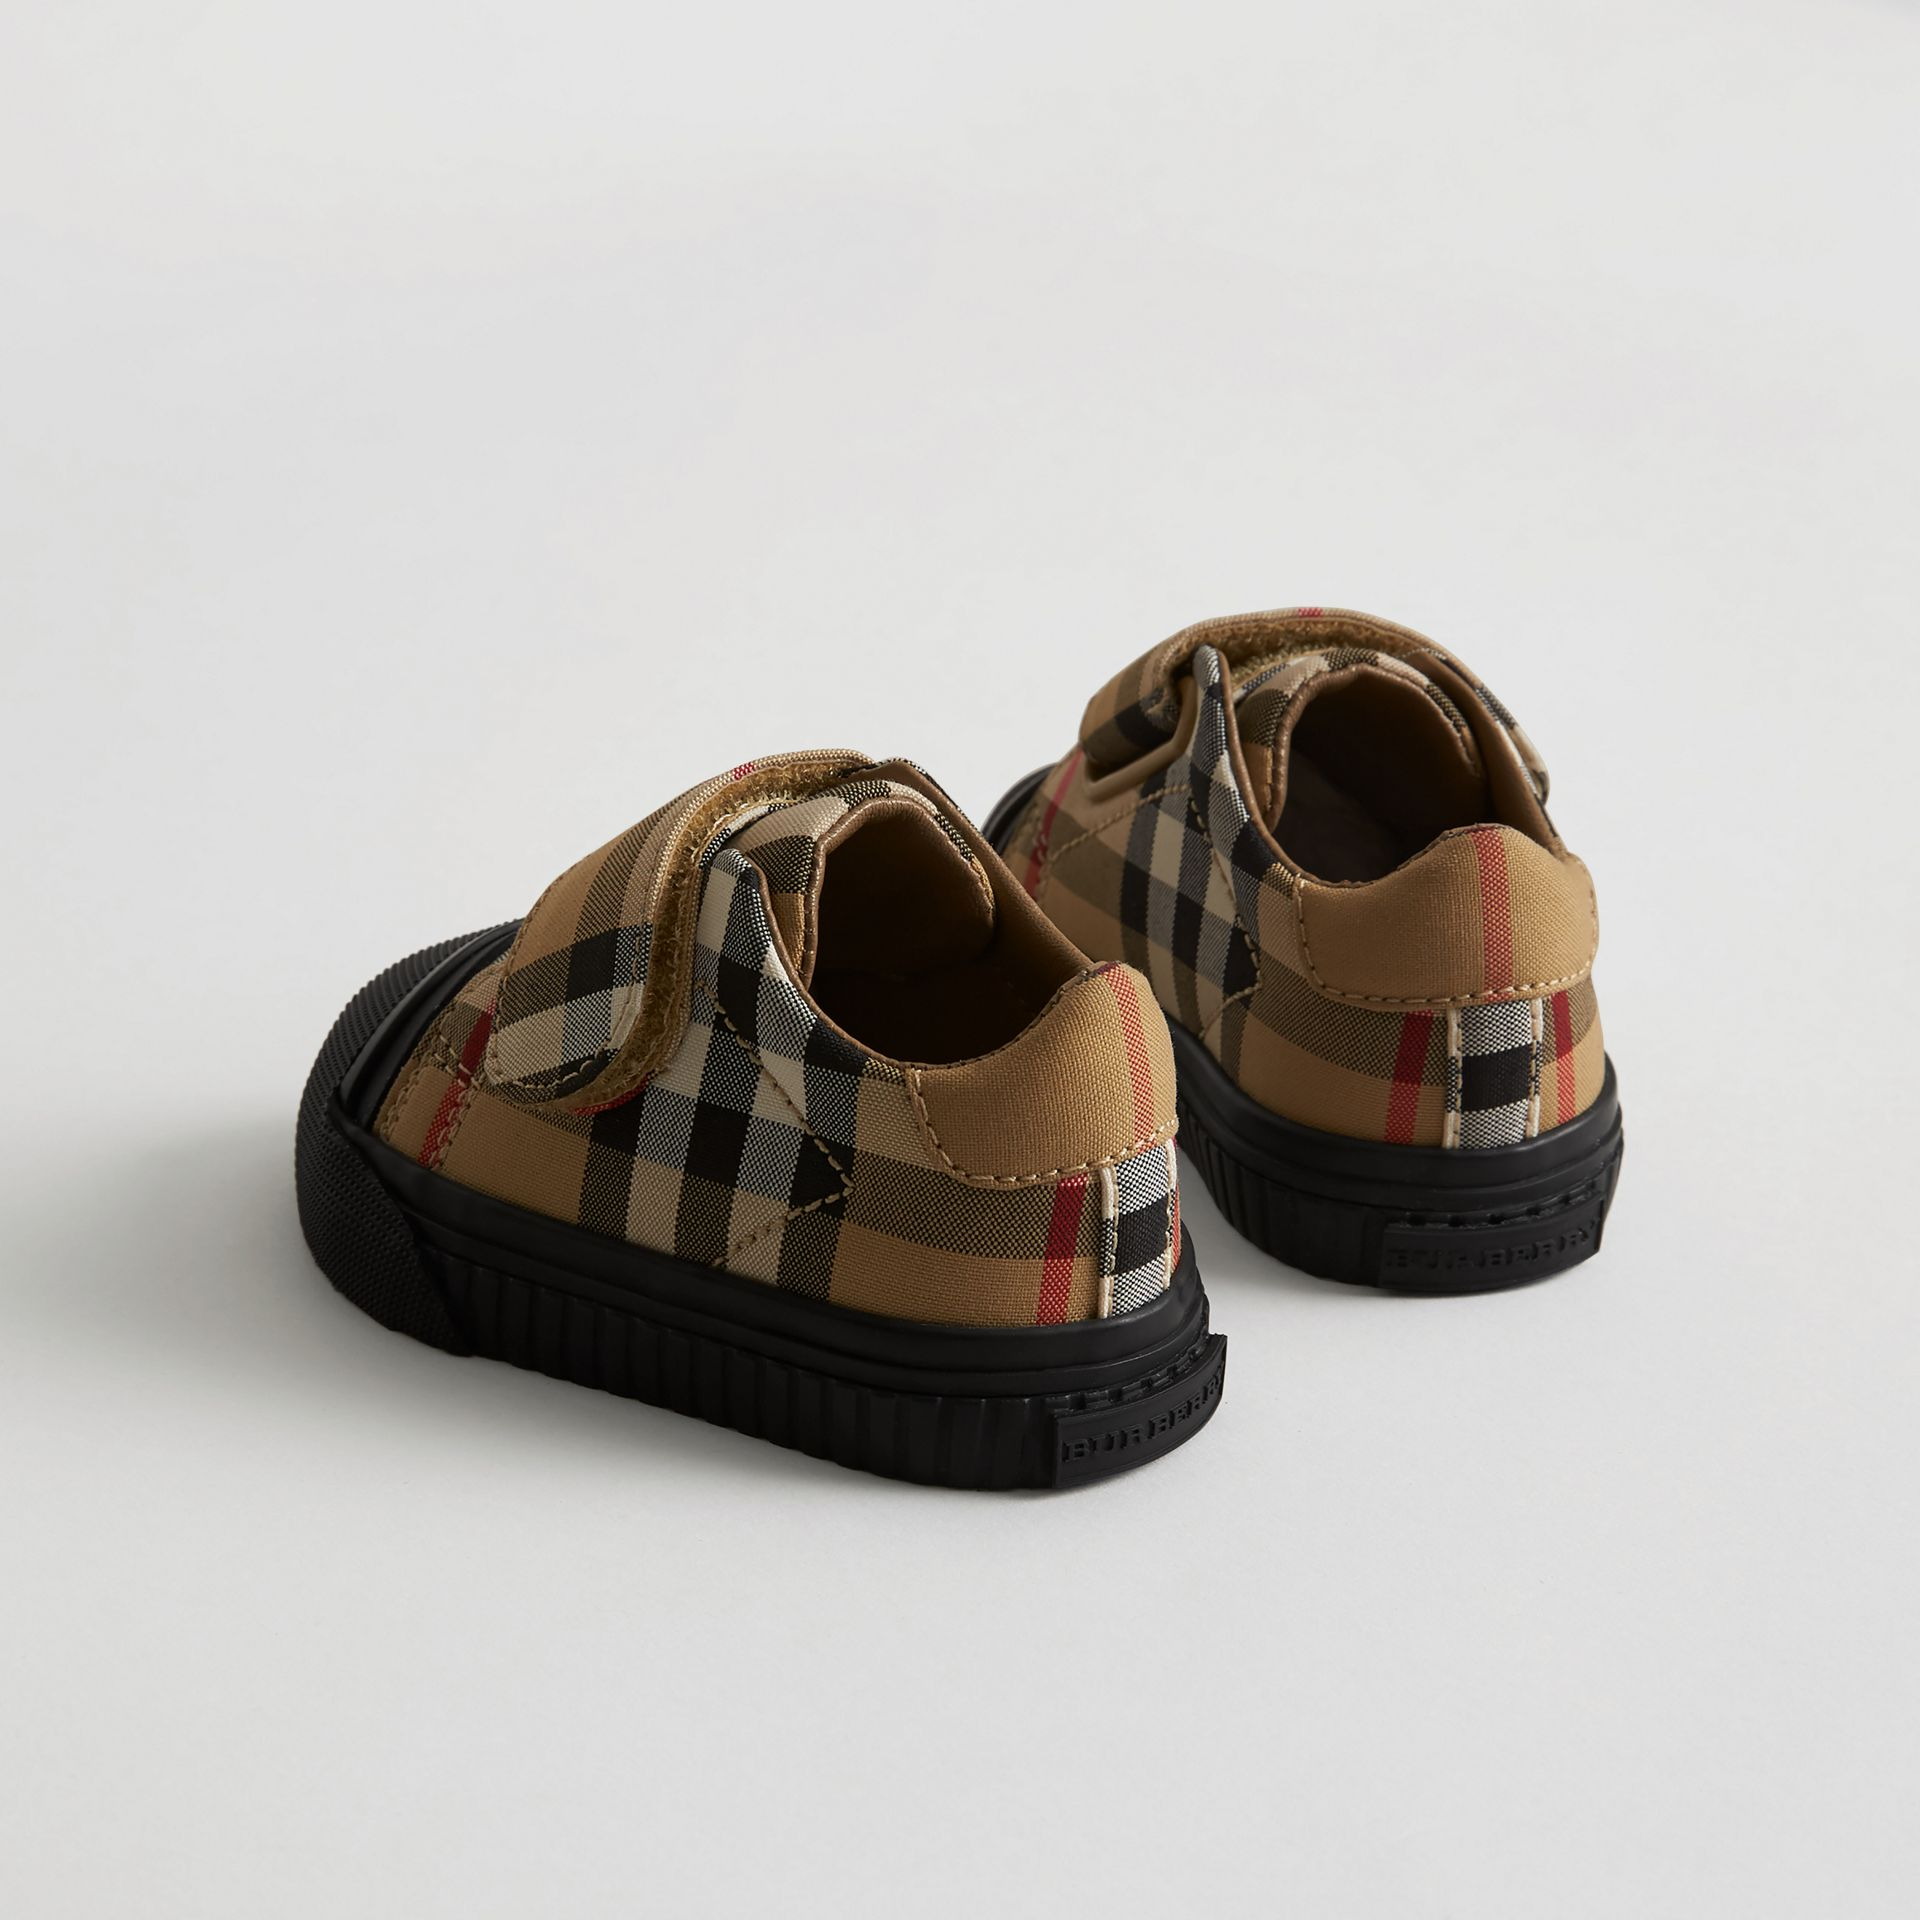 Sneakers en cuir à motif Vintage check (Jaune Antique/noir) - Enfant | Burberry - photo de la galerie 2